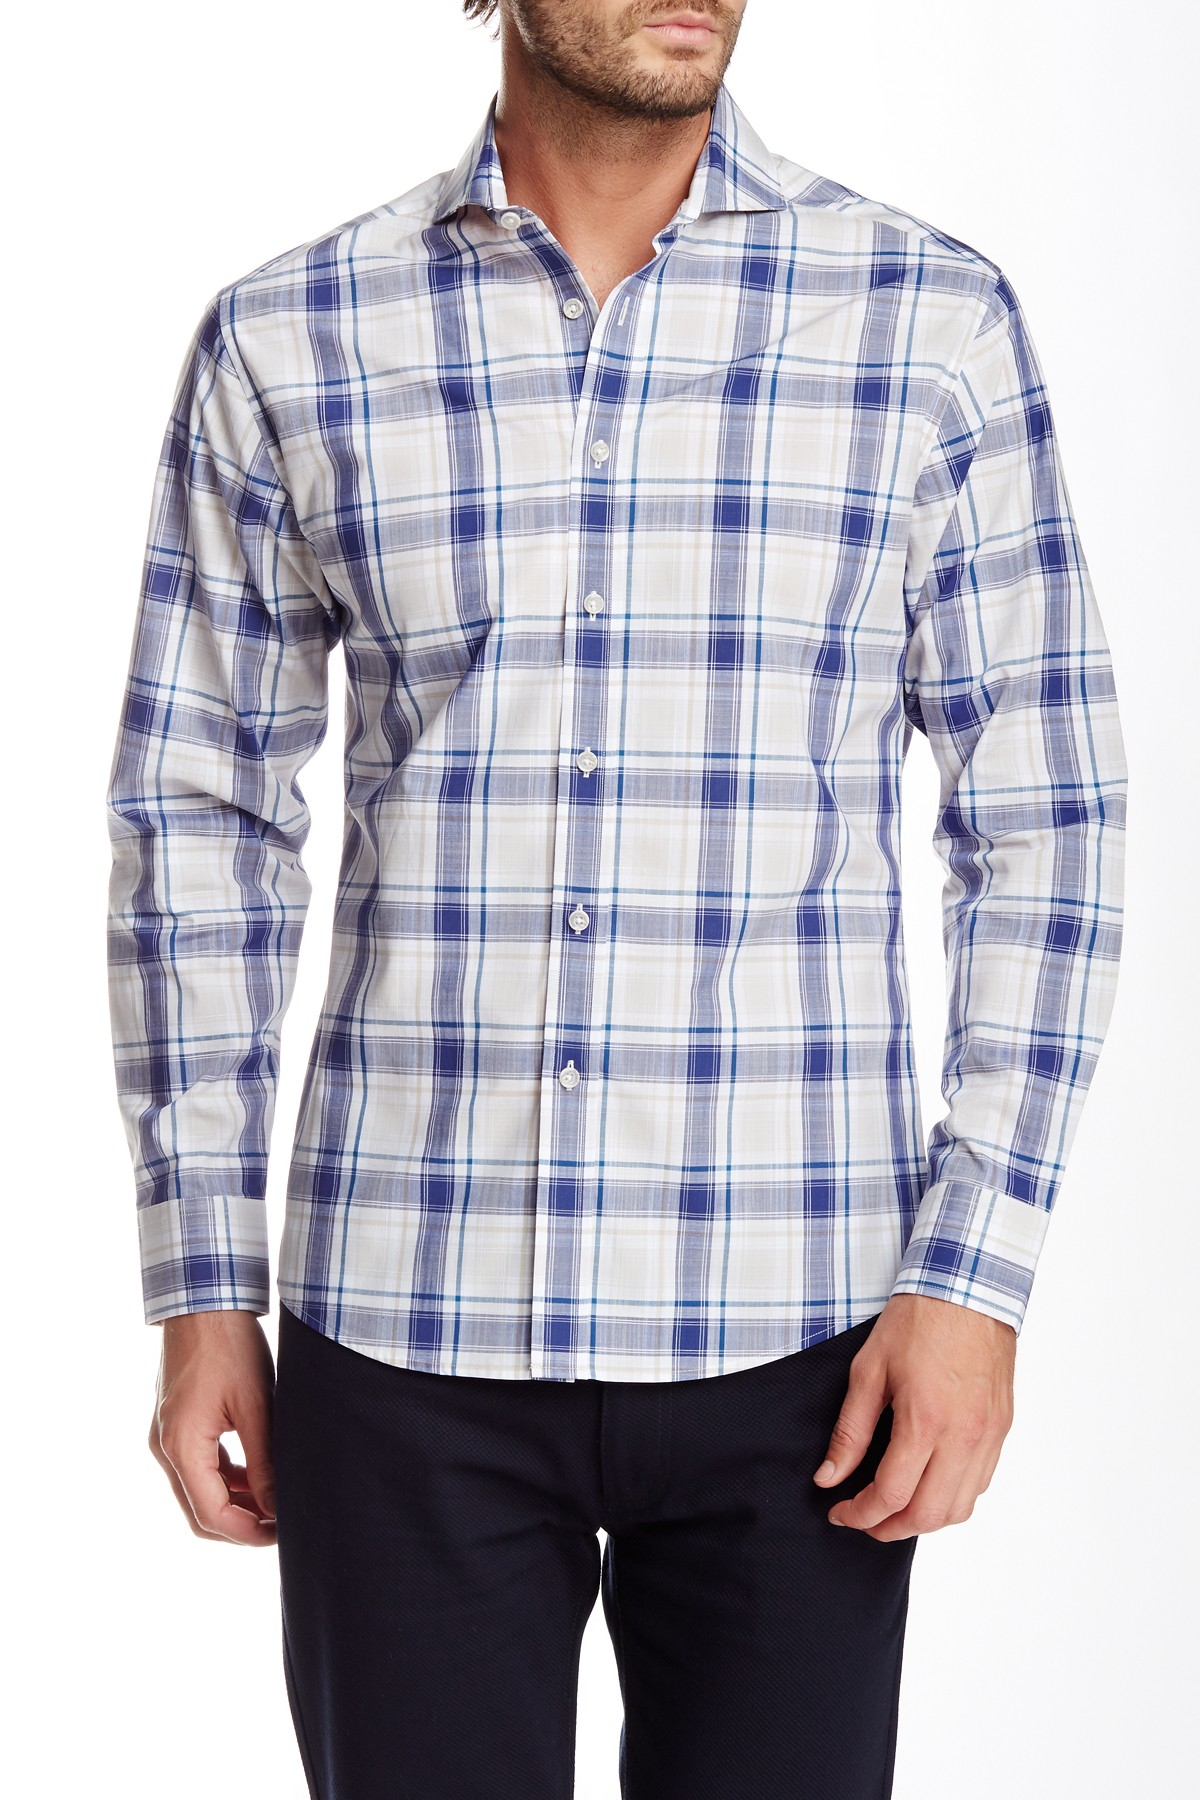 Vince camuto long sleeve plaid slim fit shirt in blue for for Nordstrom men s dress shirt fit guide